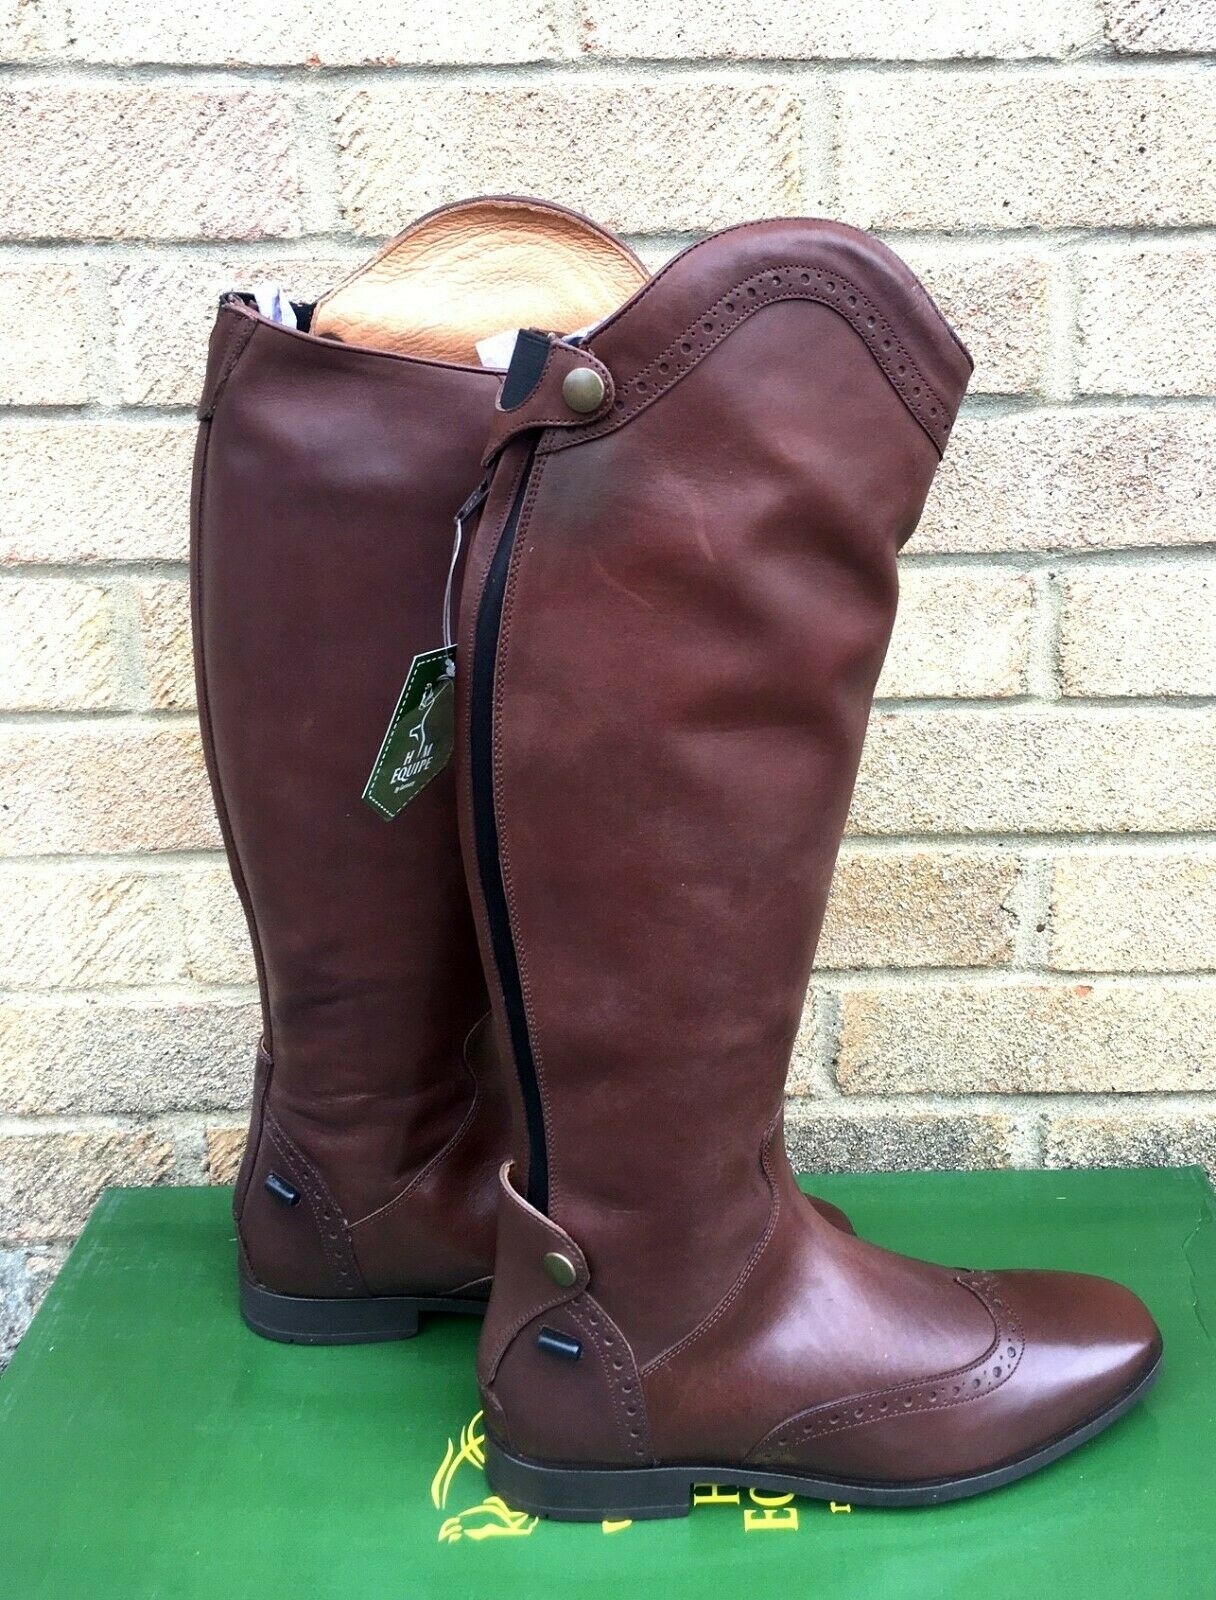 New HM Equipe Riding Boots Vega LEATHER Boots STD CALF BROWN RRP